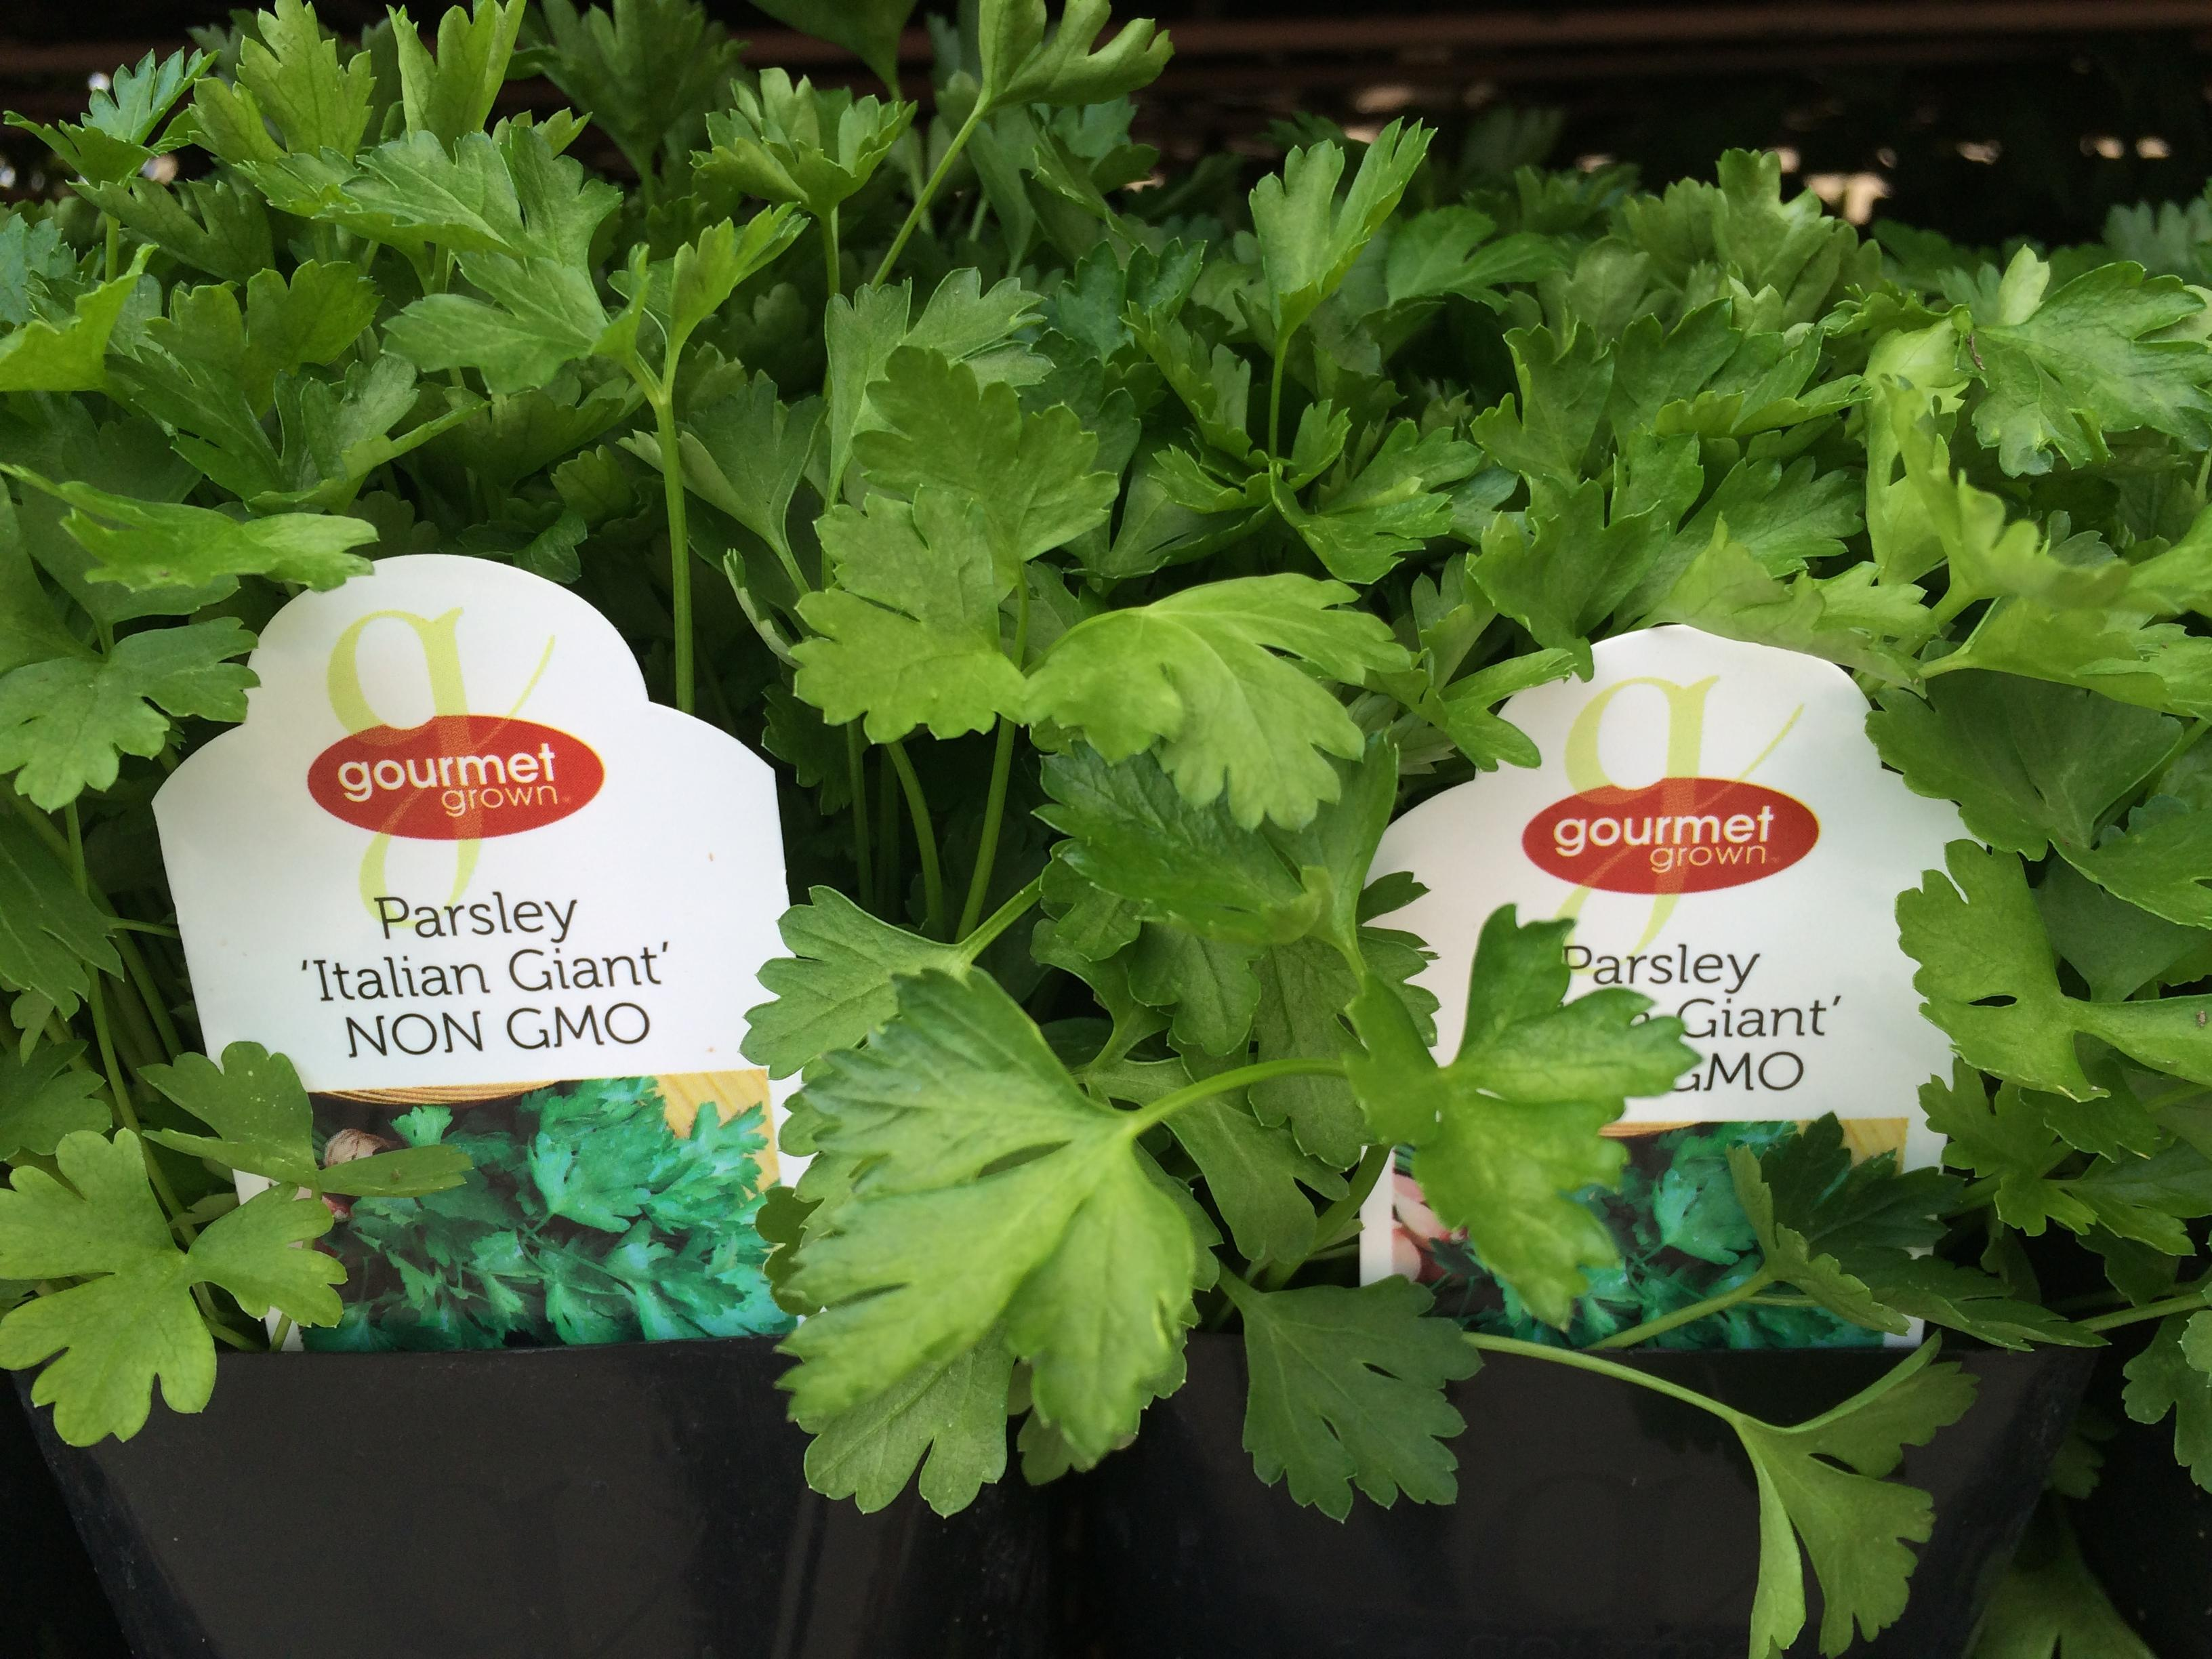 Parsley 'Italian Giant' image